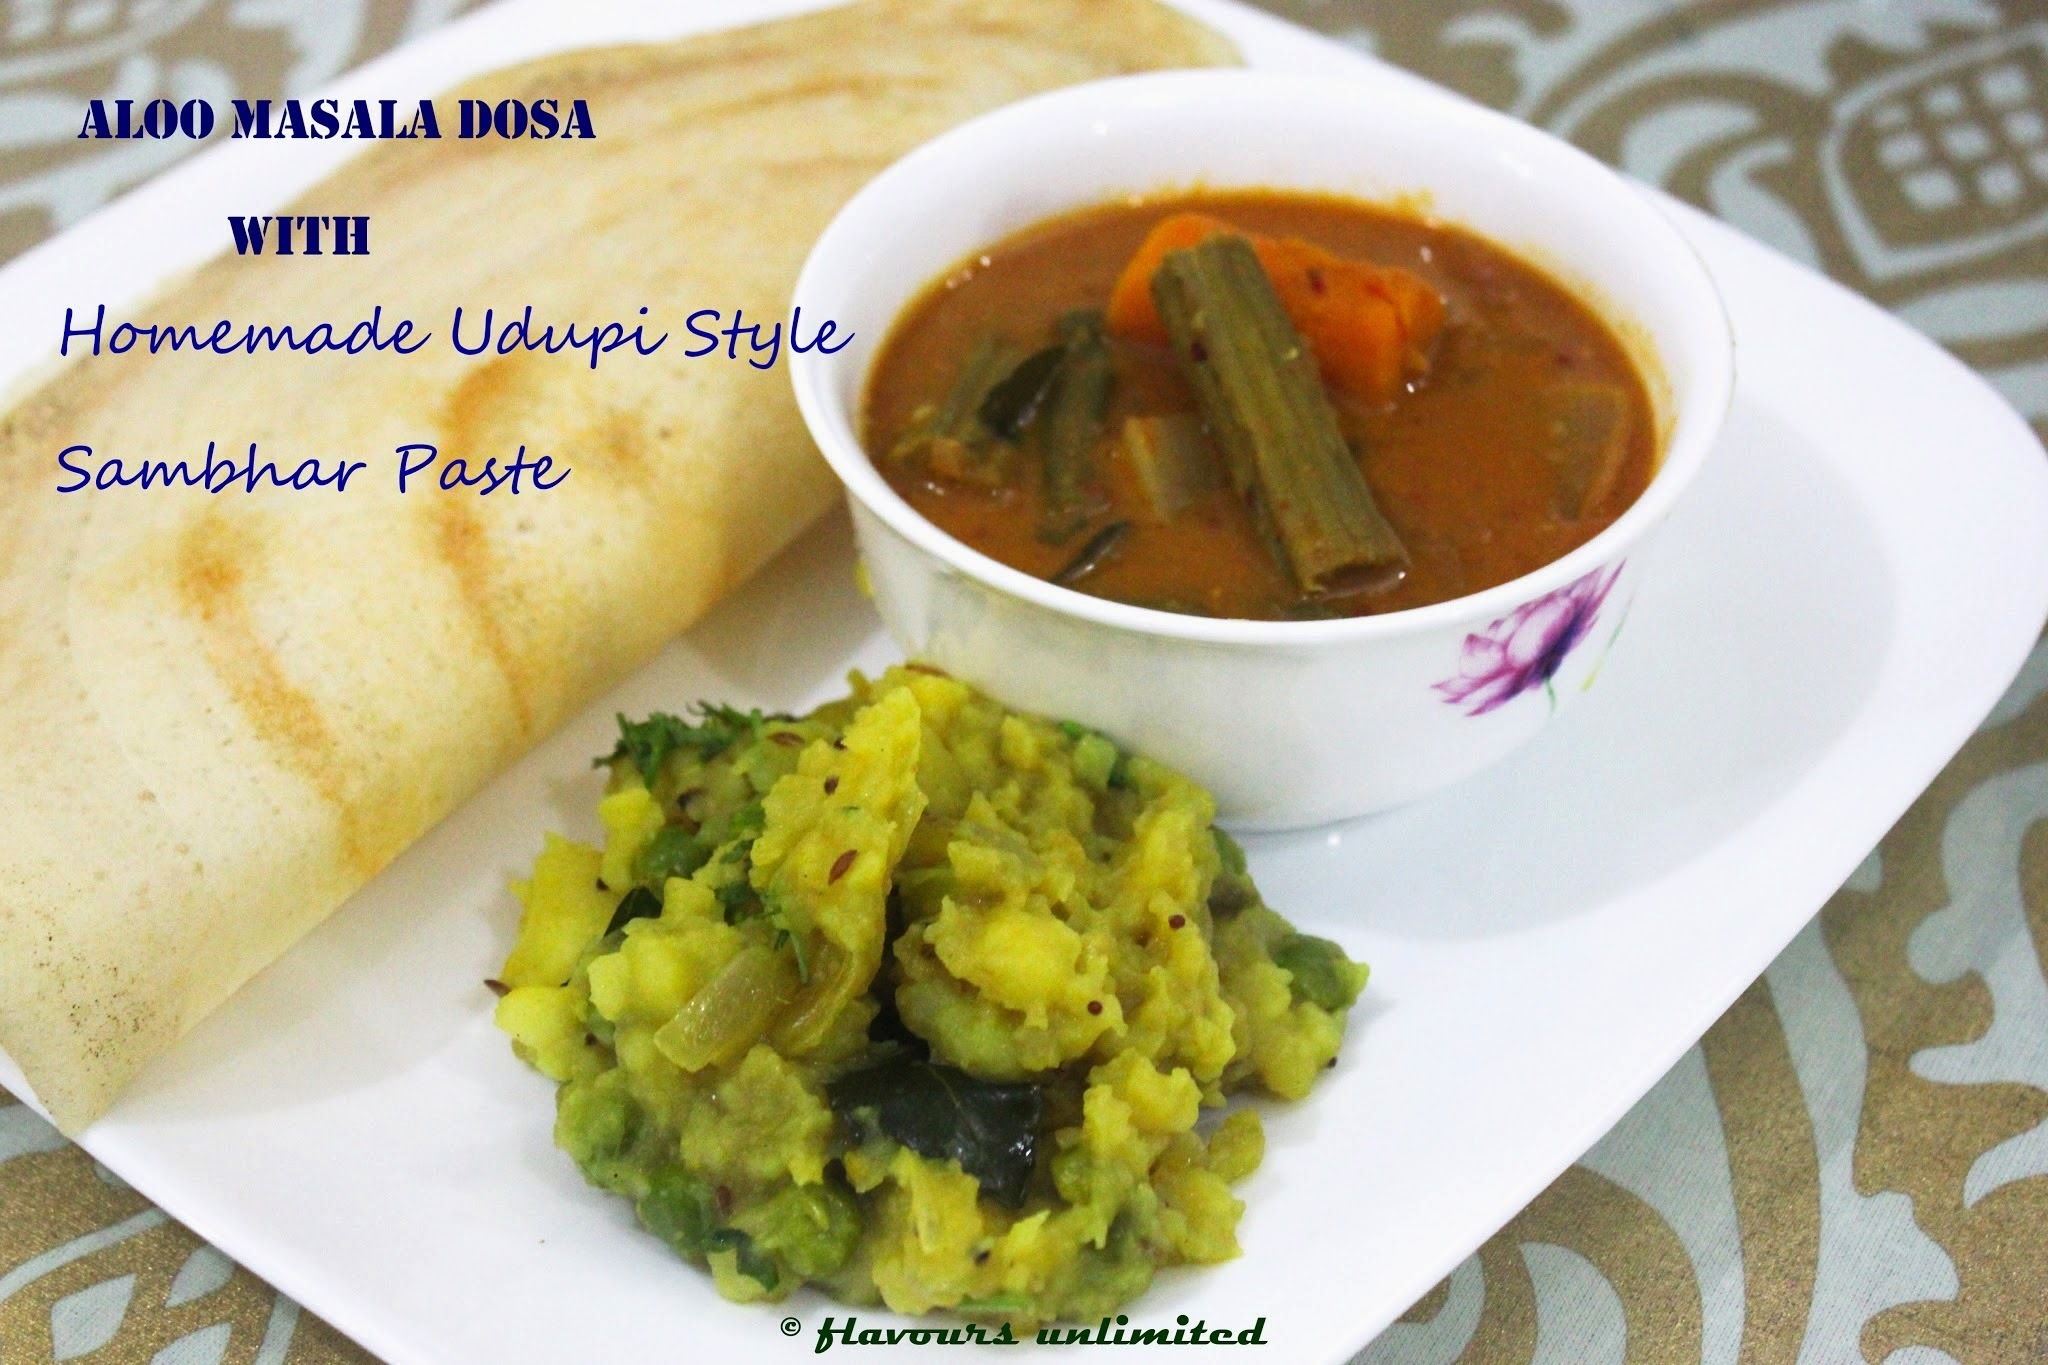 Aloo Masala Dosa With Udupi Style Sambhar Made with Fresh Sambhar Ground Paste - How to Make a Perfect Dosa